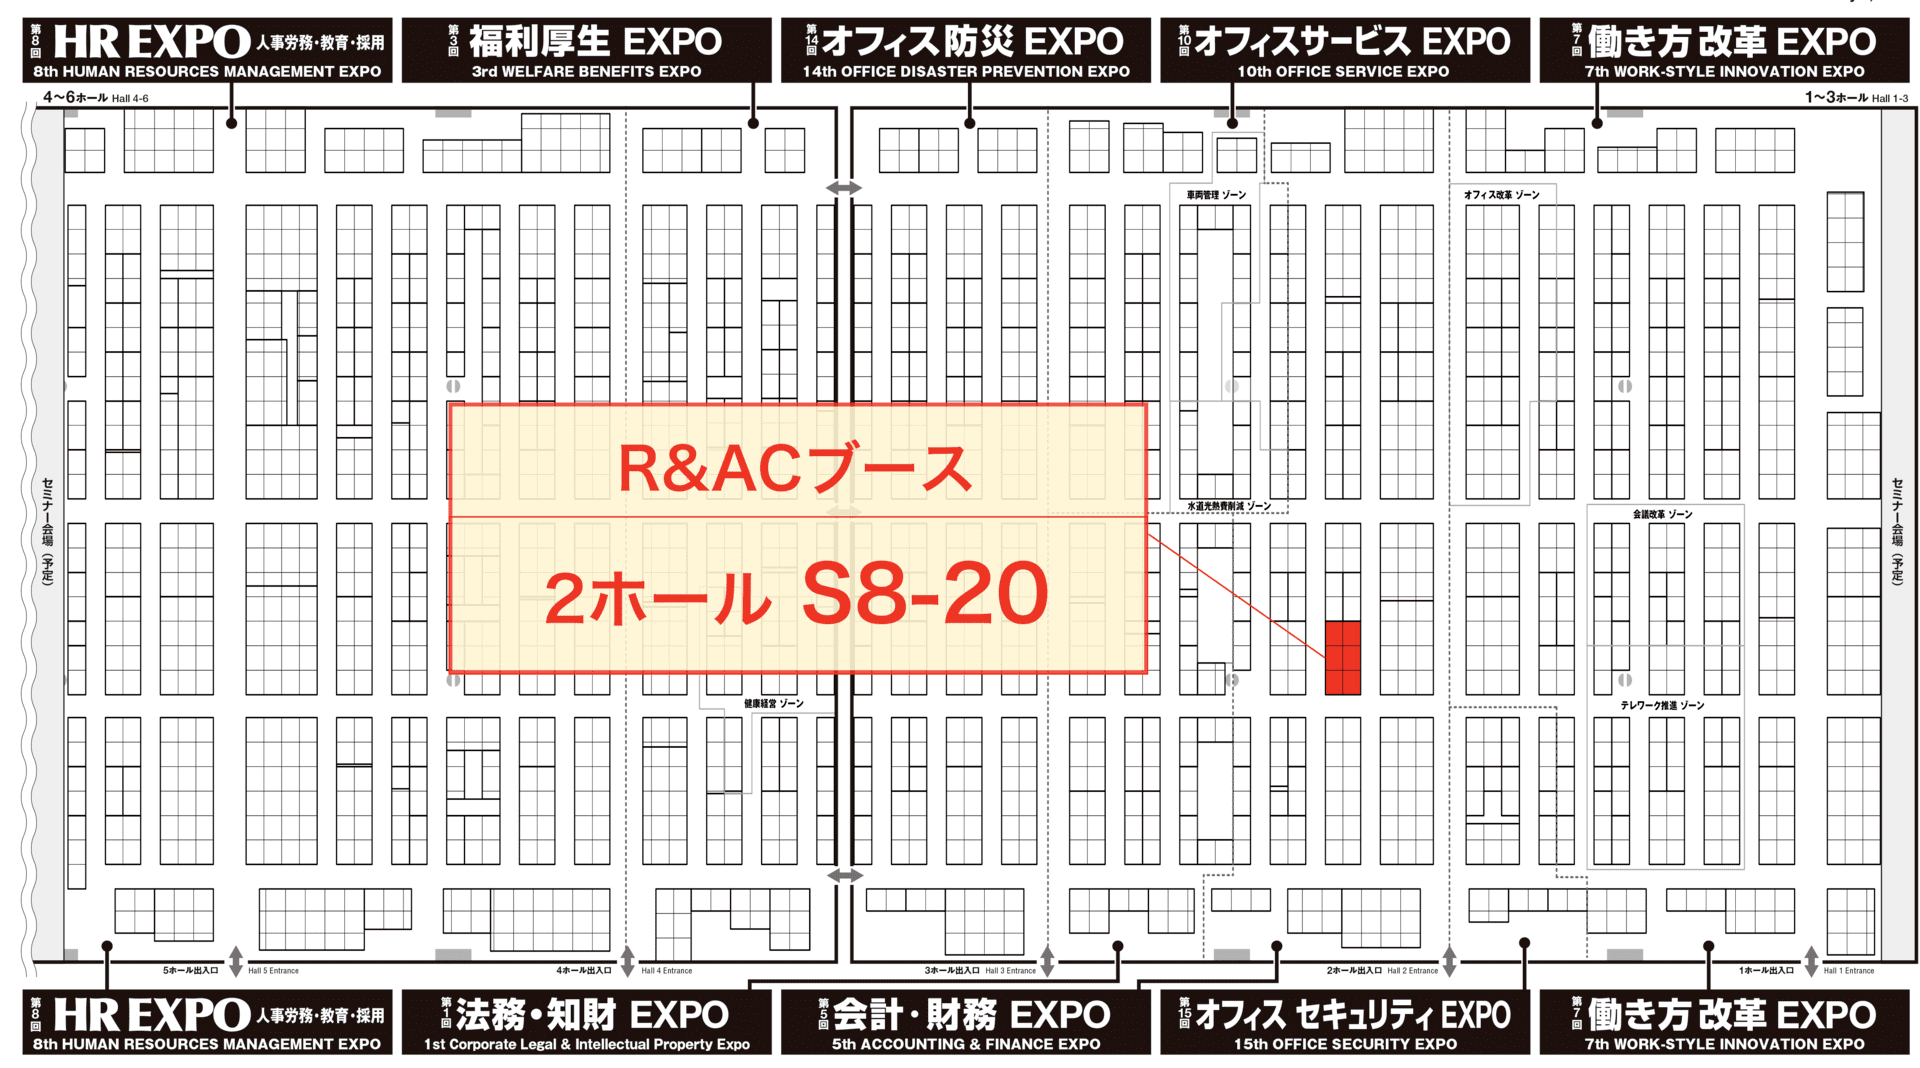 202008EXPObooth (1).png